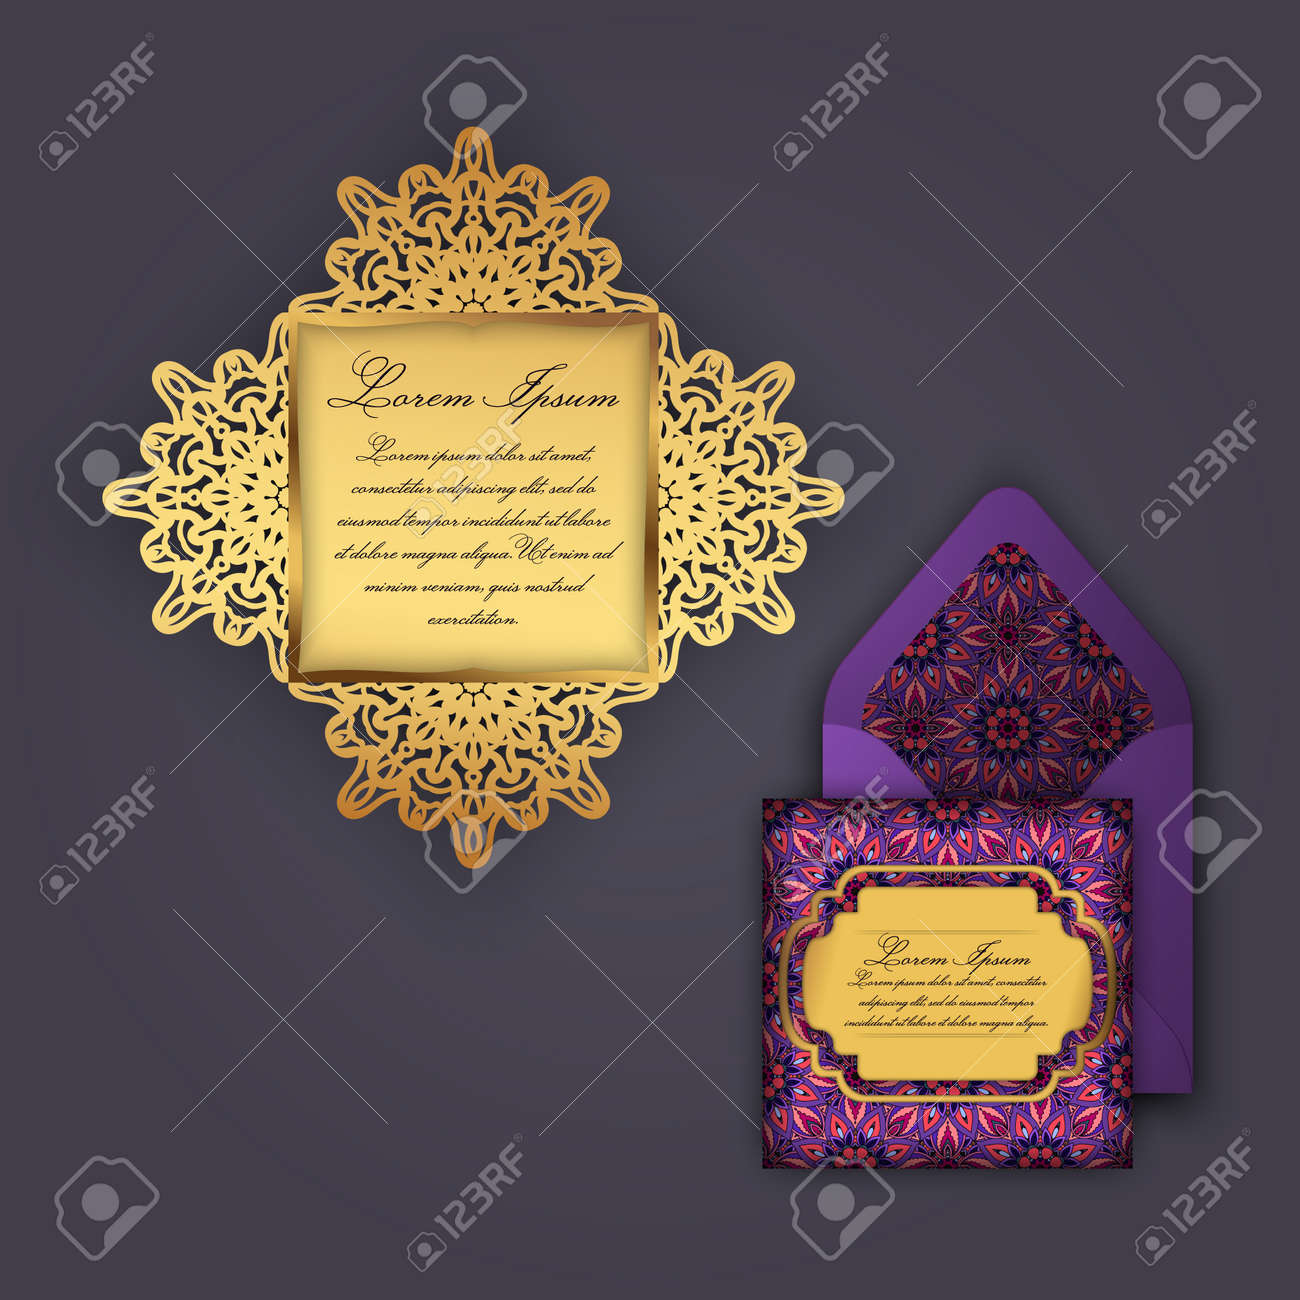 wedding invitation or greeting card with vintage floral ornament